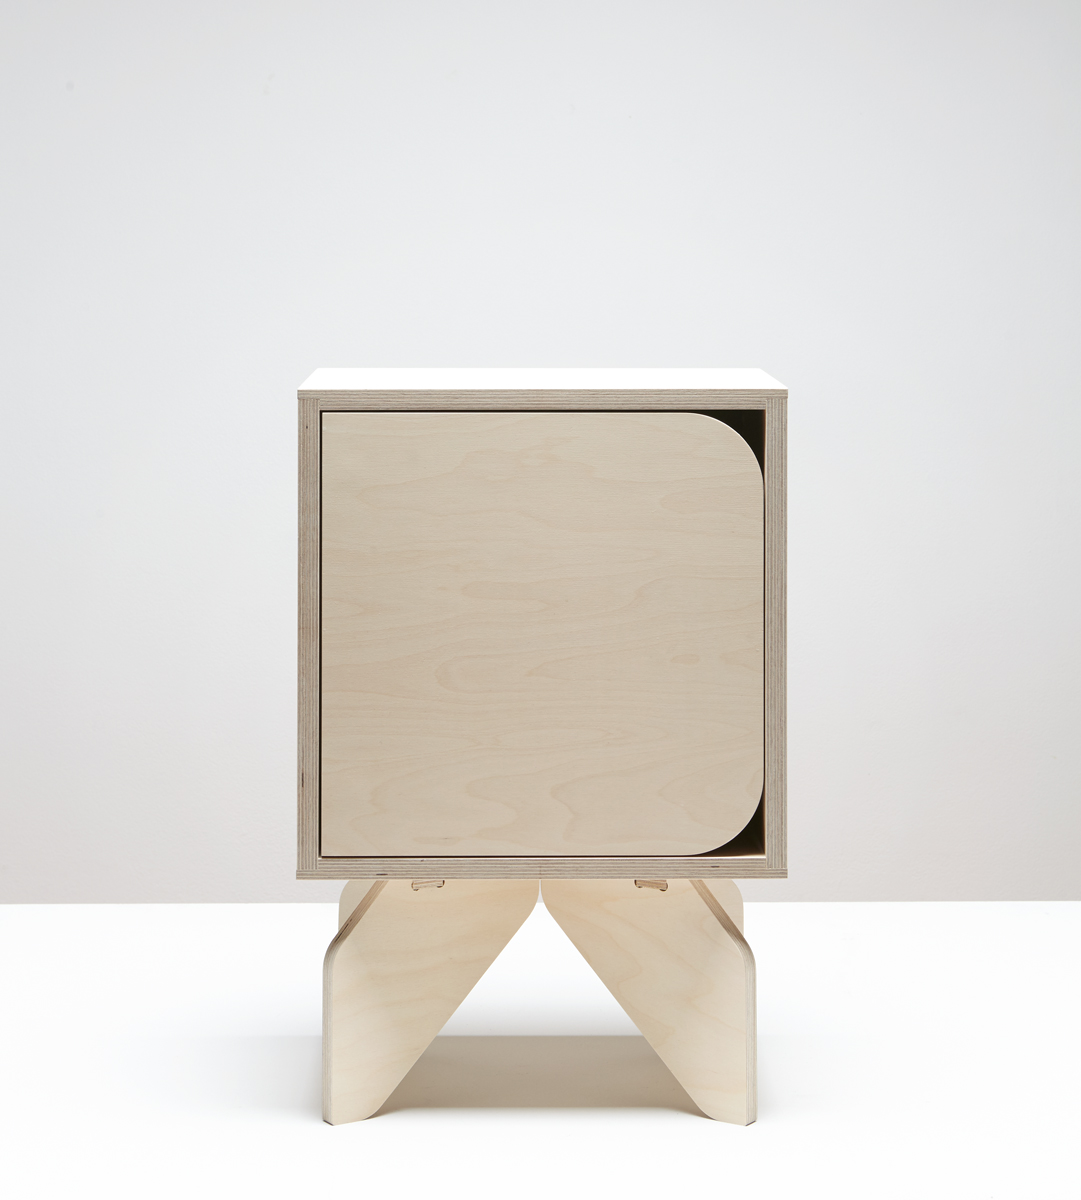 Rocket Bedside - Natural birch plywood. Photo by Thom Brookes photography